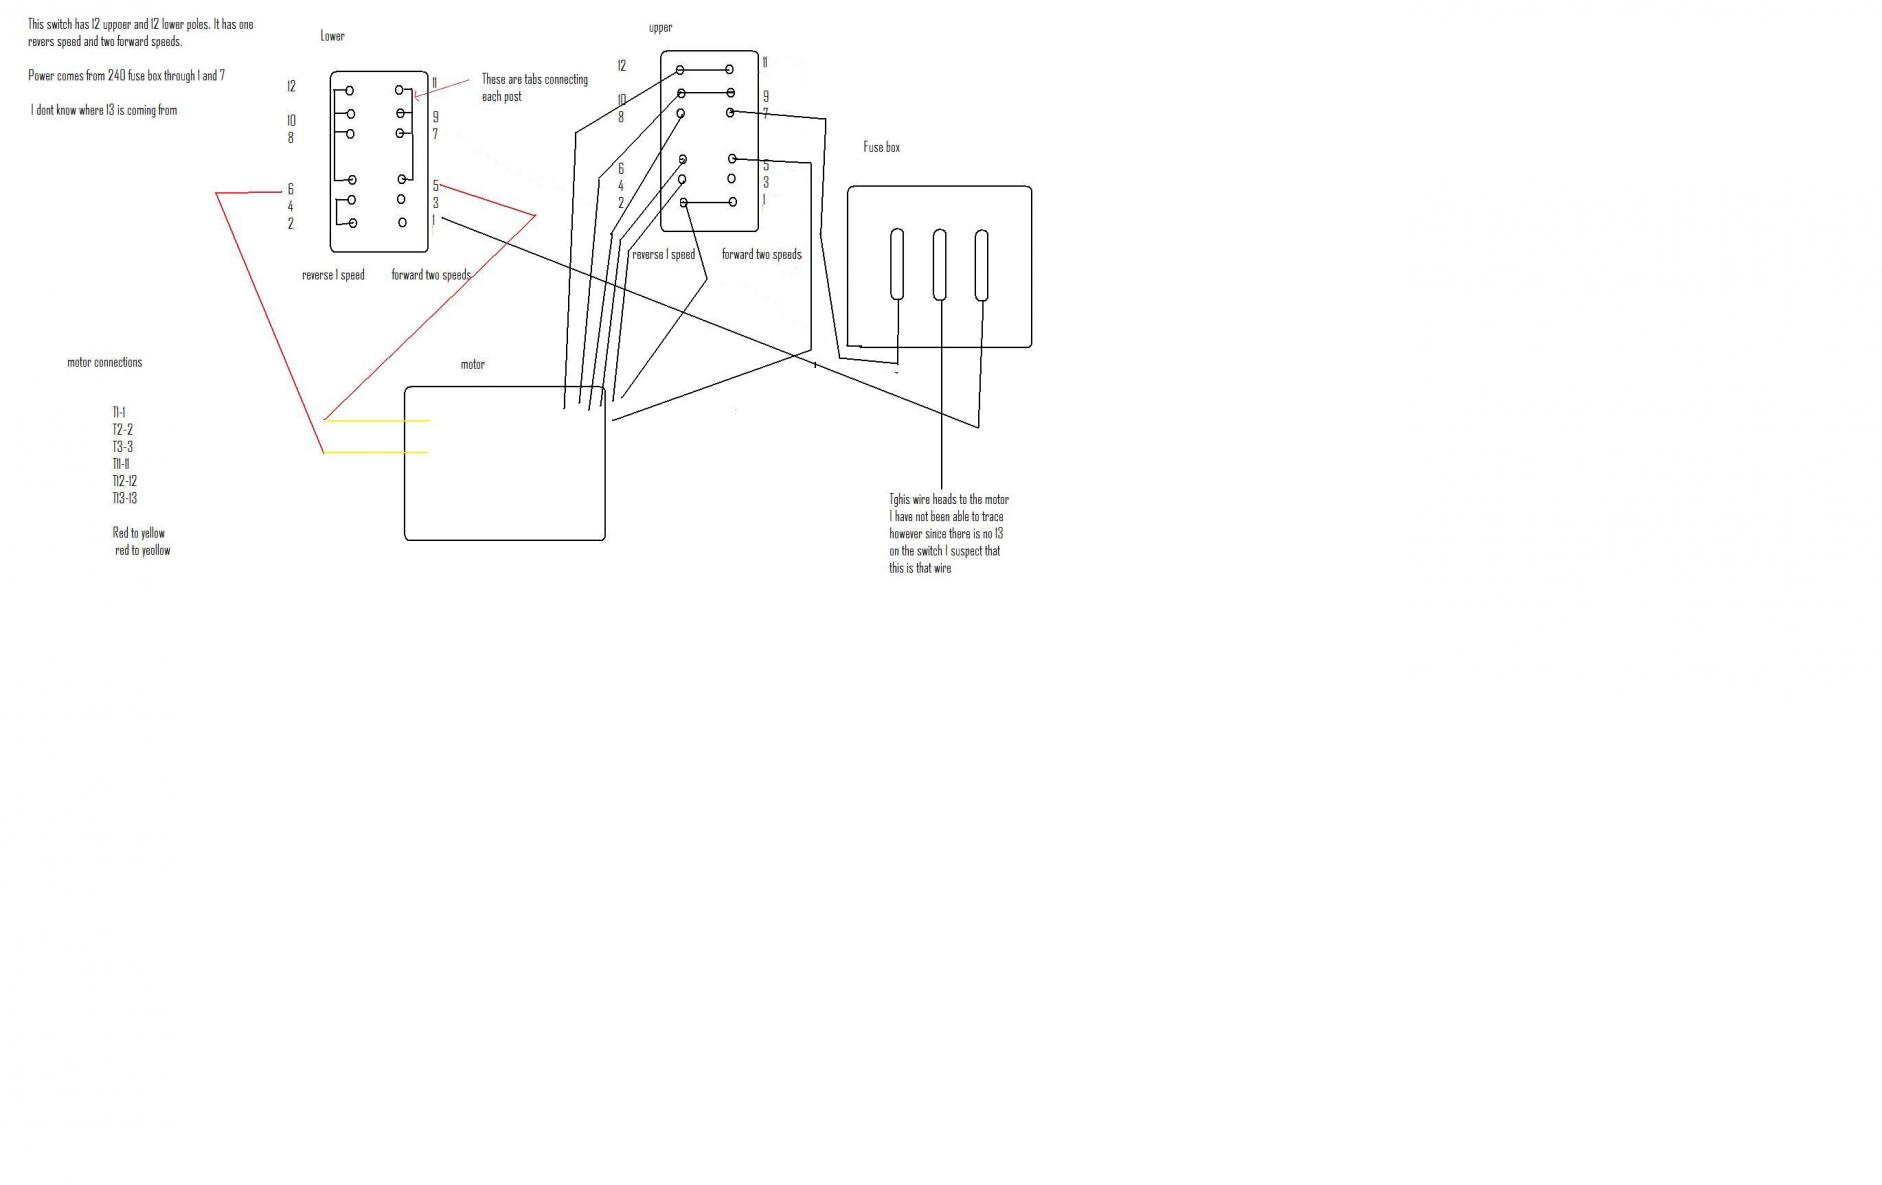 Three Phase Wiring Fuse Box Explained Diagrams Components Using Pony Motor And Capacitor Lathe 1